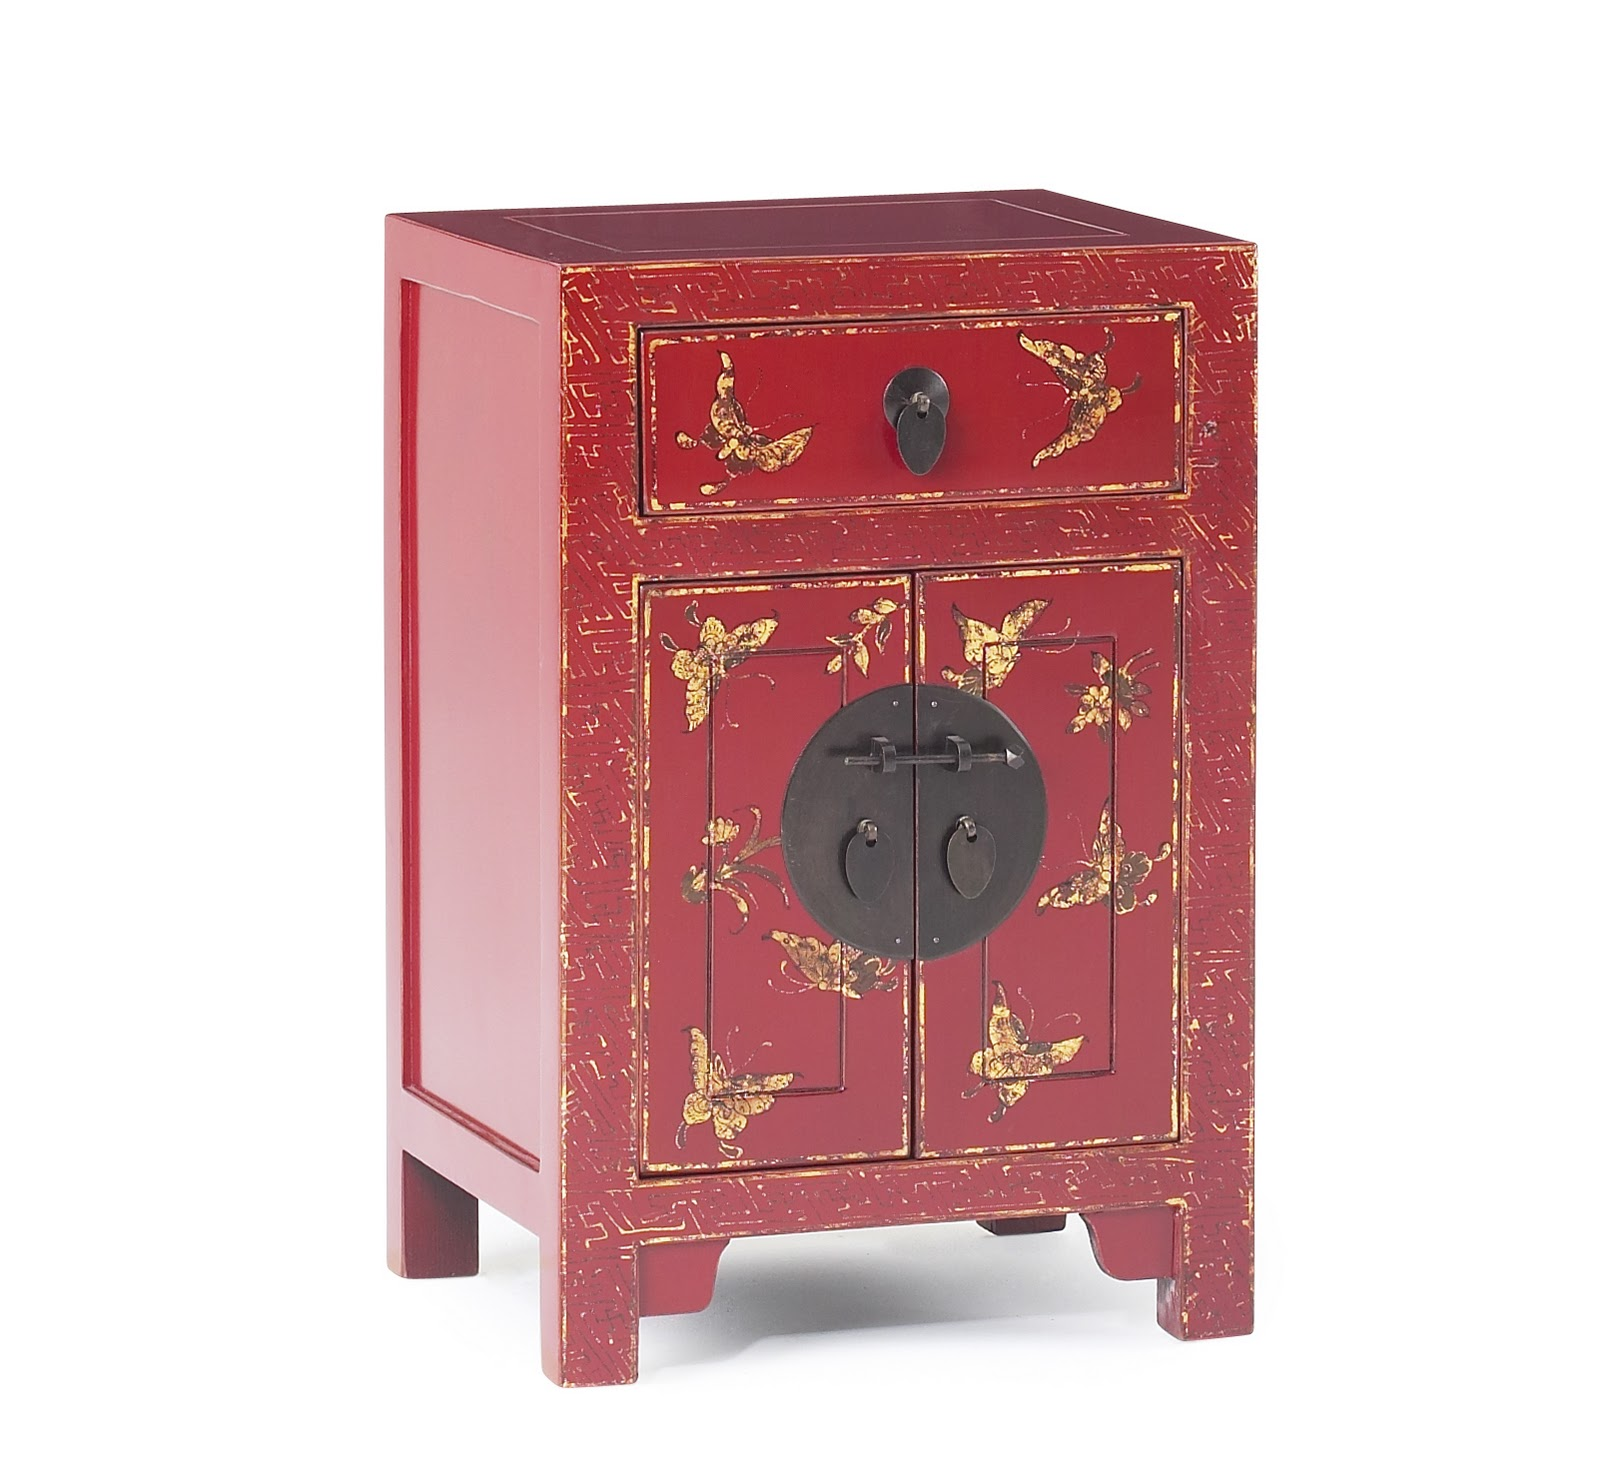 http://1.bp.blogspot.com/-0P70emkEevw/TWKEdWRvmAI/AAAAAAAAAW4/hlgYxa9oV4w/s1600/Interiors+Chinese+-+Chinoiserie+Red+Lacquer+Hand+Painted+Bedside+Cabinet+from+Supatra.jpg